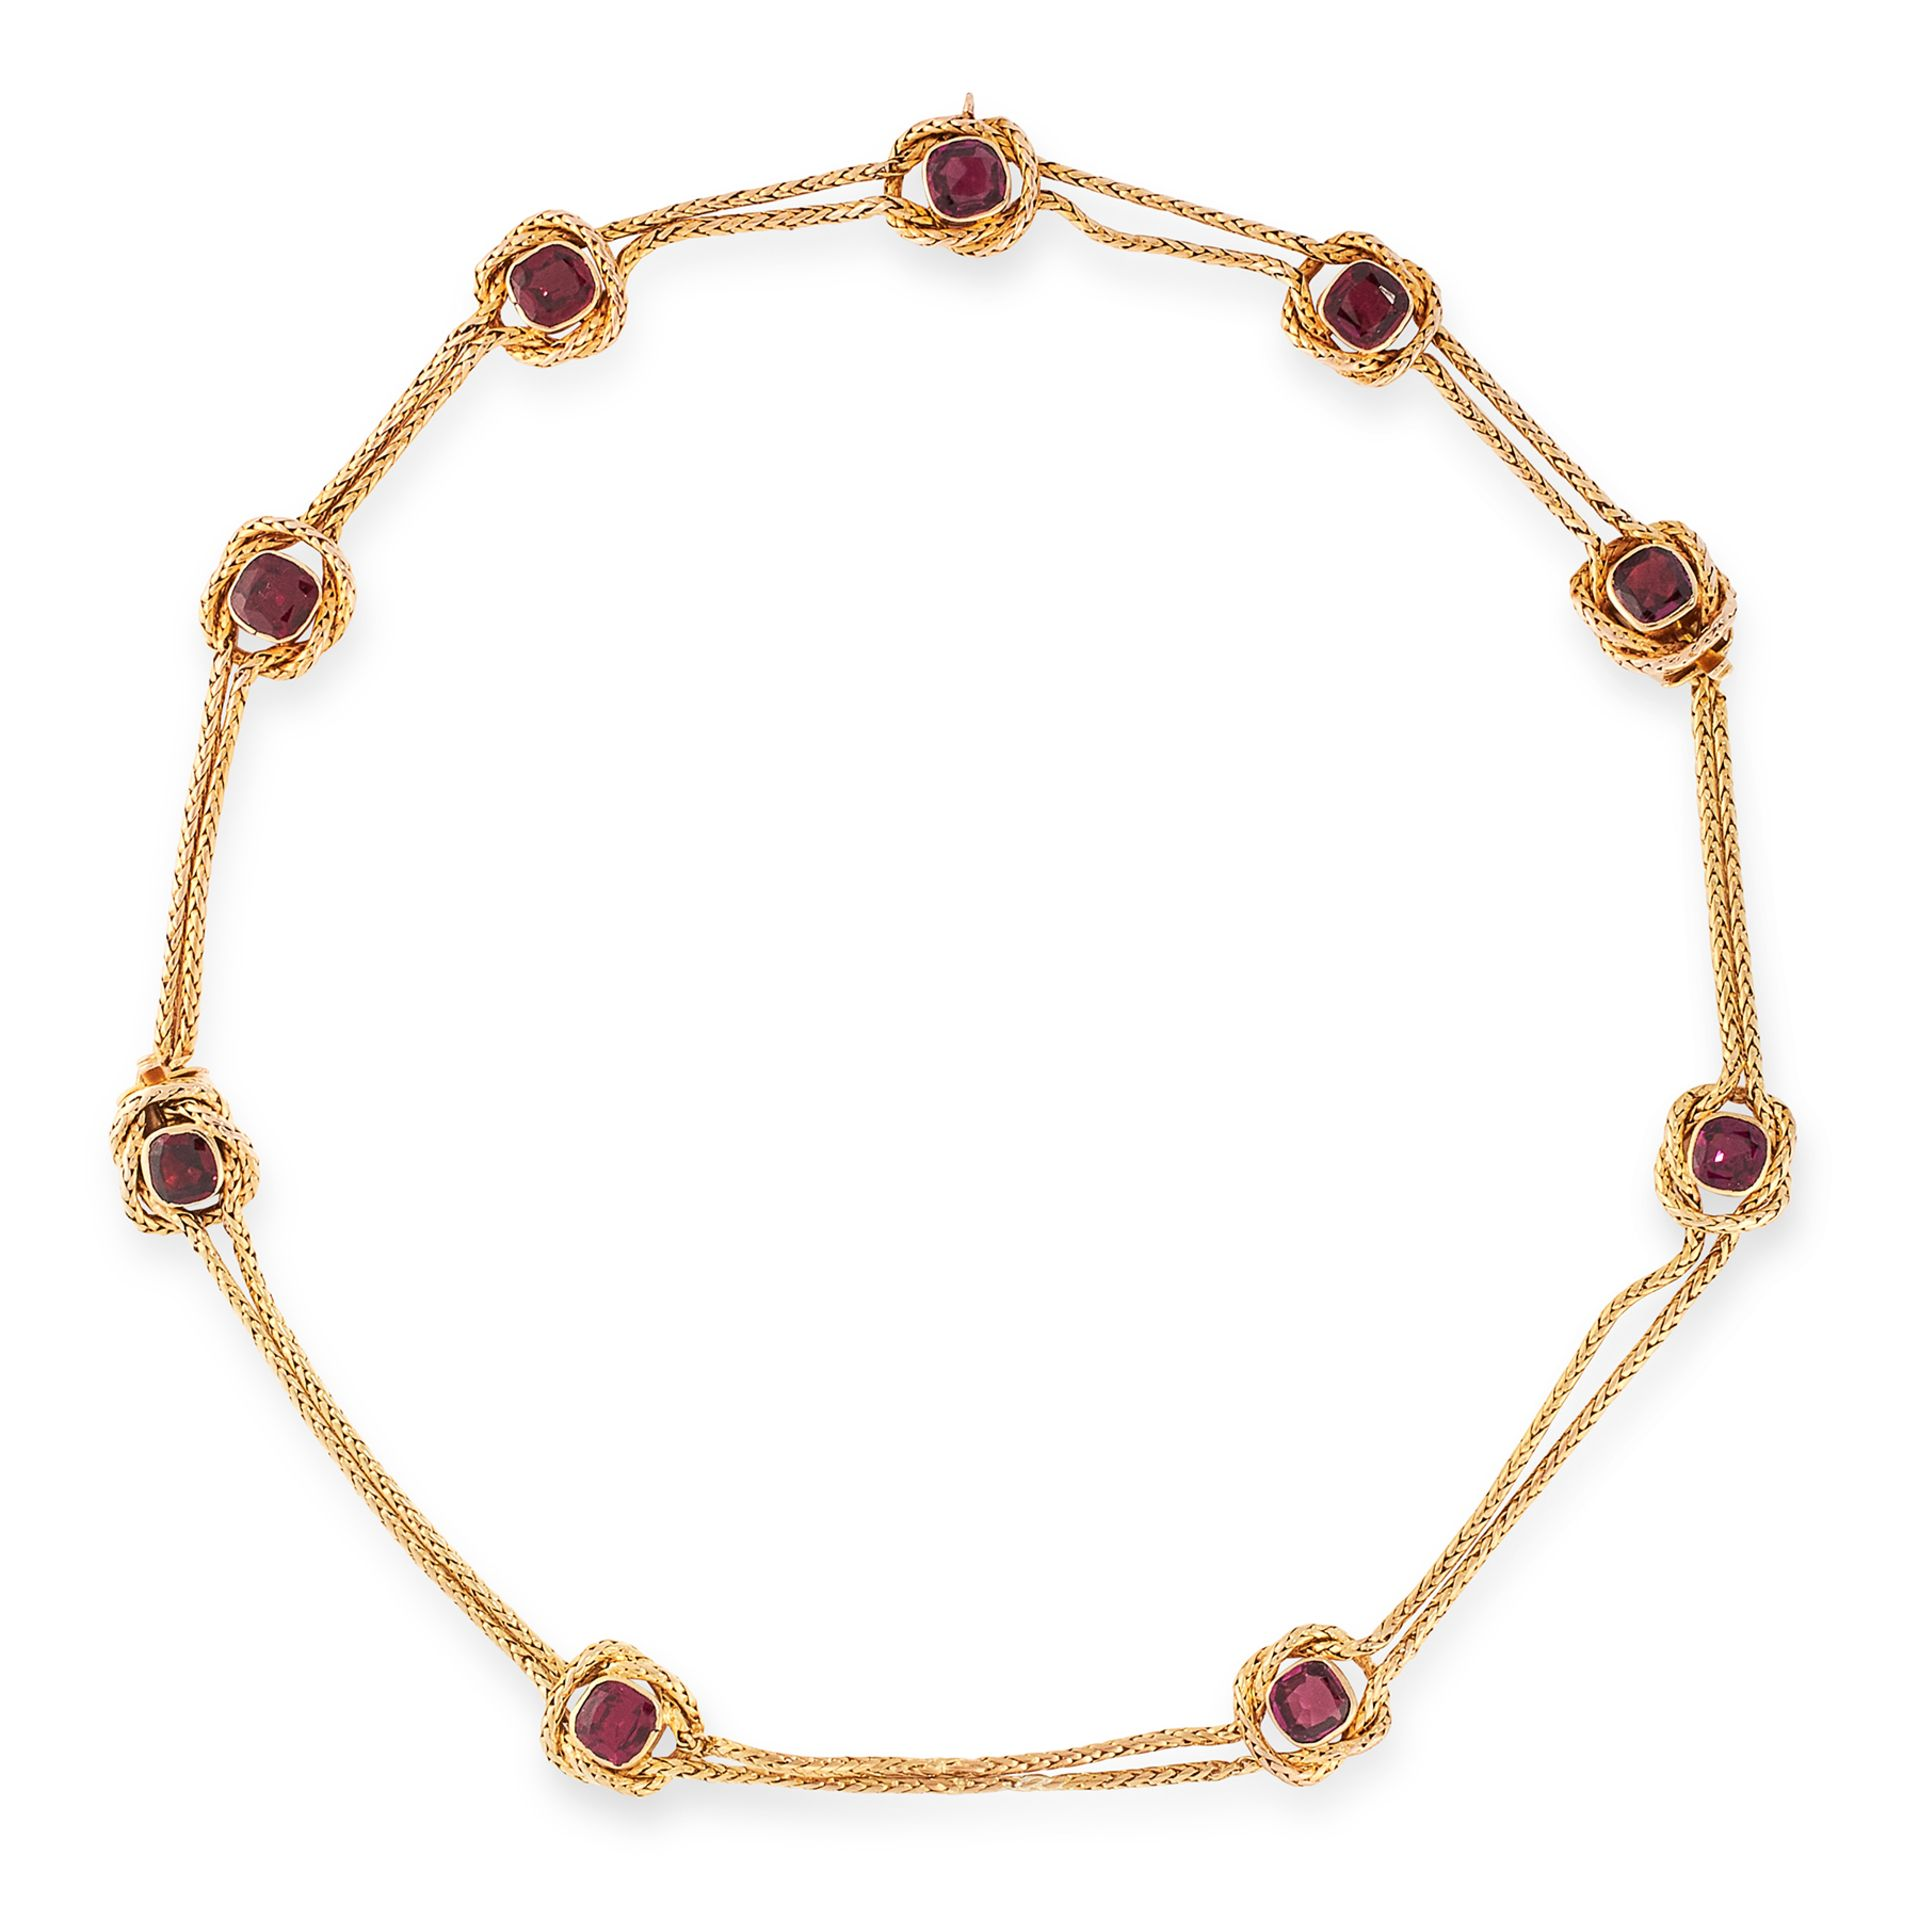 AN ANTIQUE GARNET NECKLACE in yellow gold, comprising a row of nine cushion cut garnets within